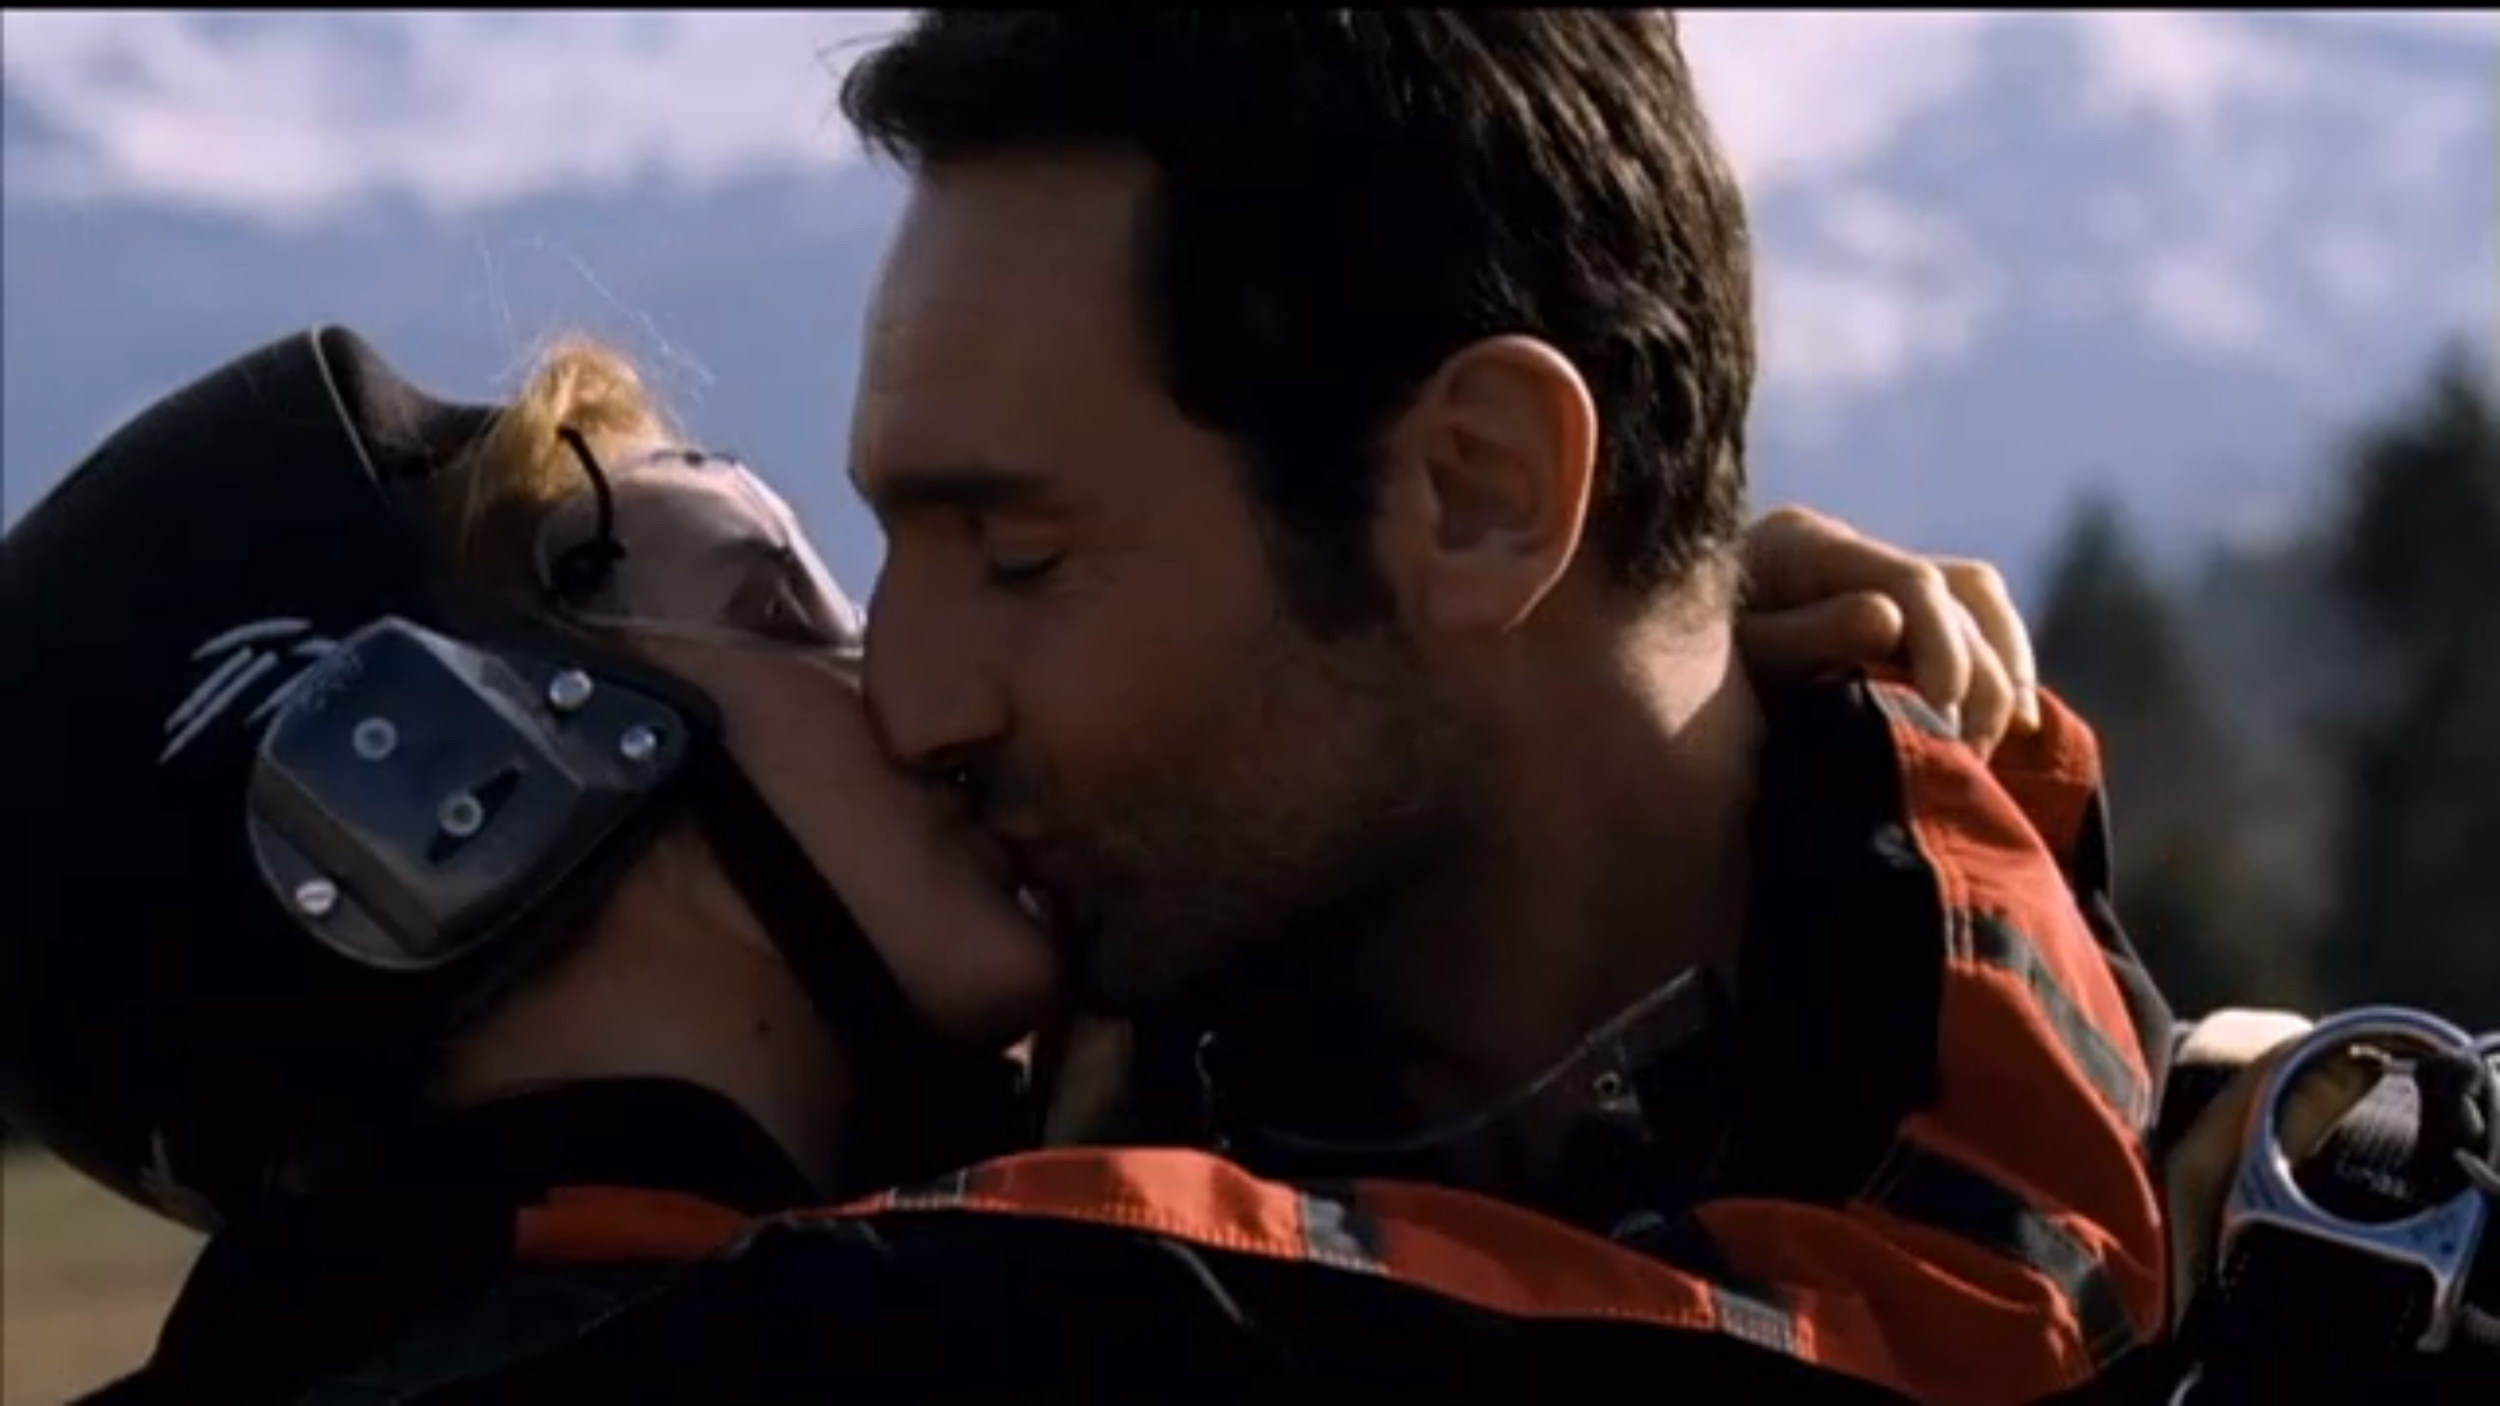 Vahina Giocante and Gilles Lellouche in Krach (2010)